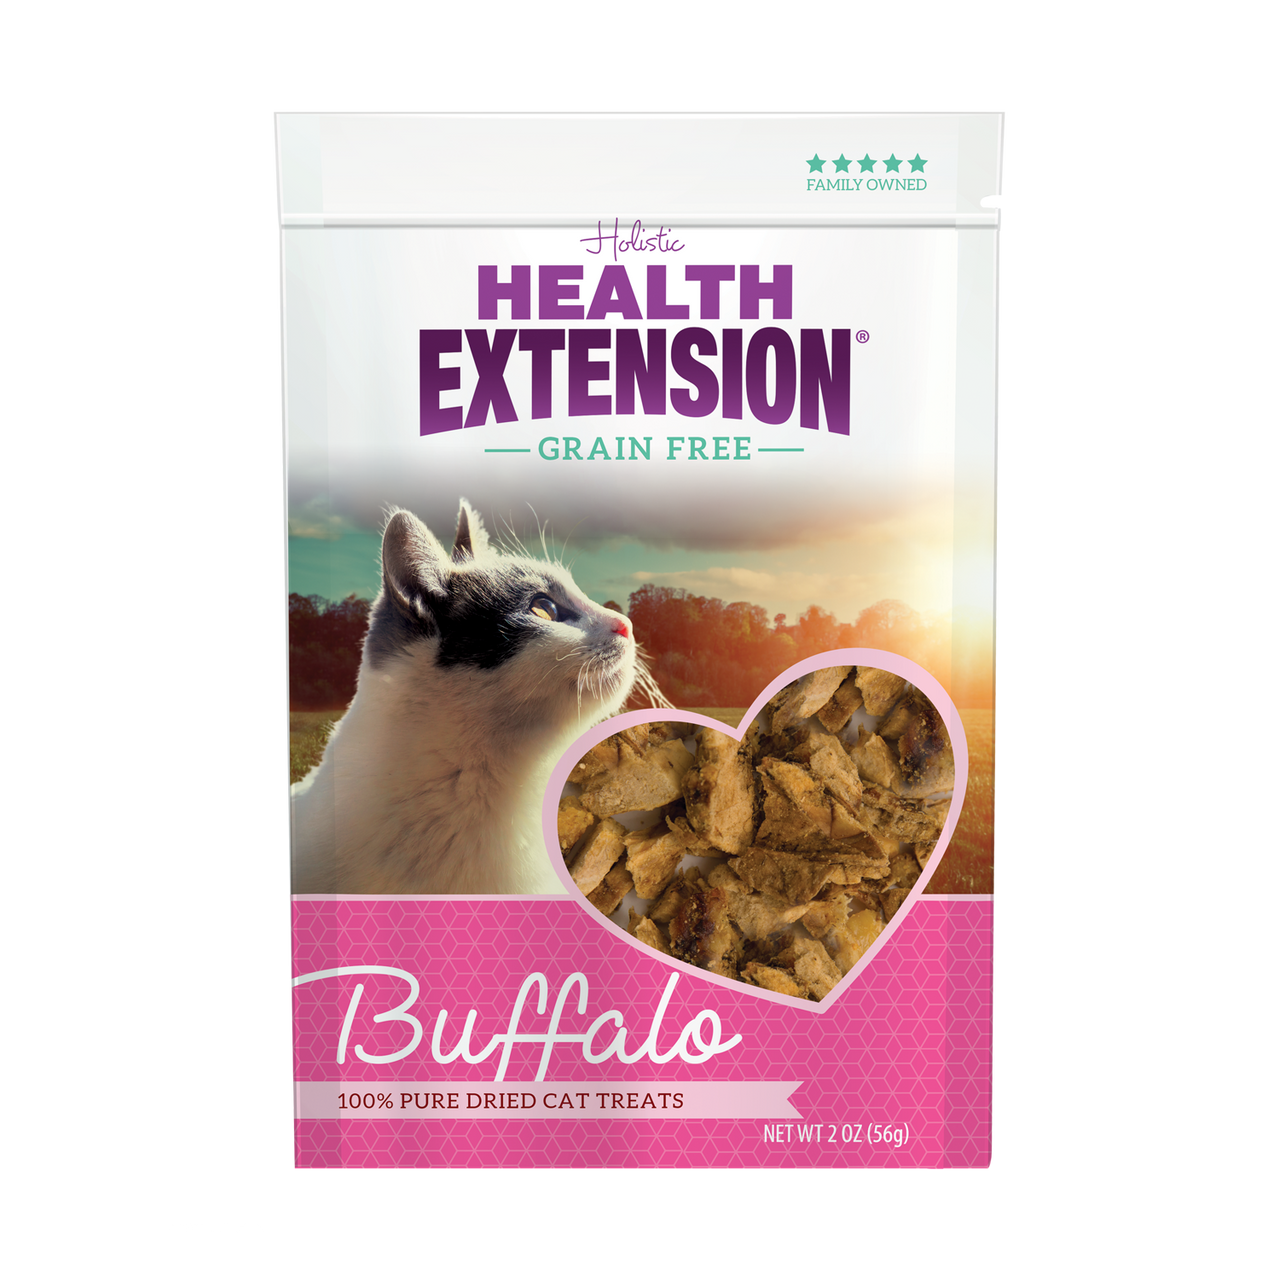 Grain Free Buffalo 100% Pure Dried Cat Treats